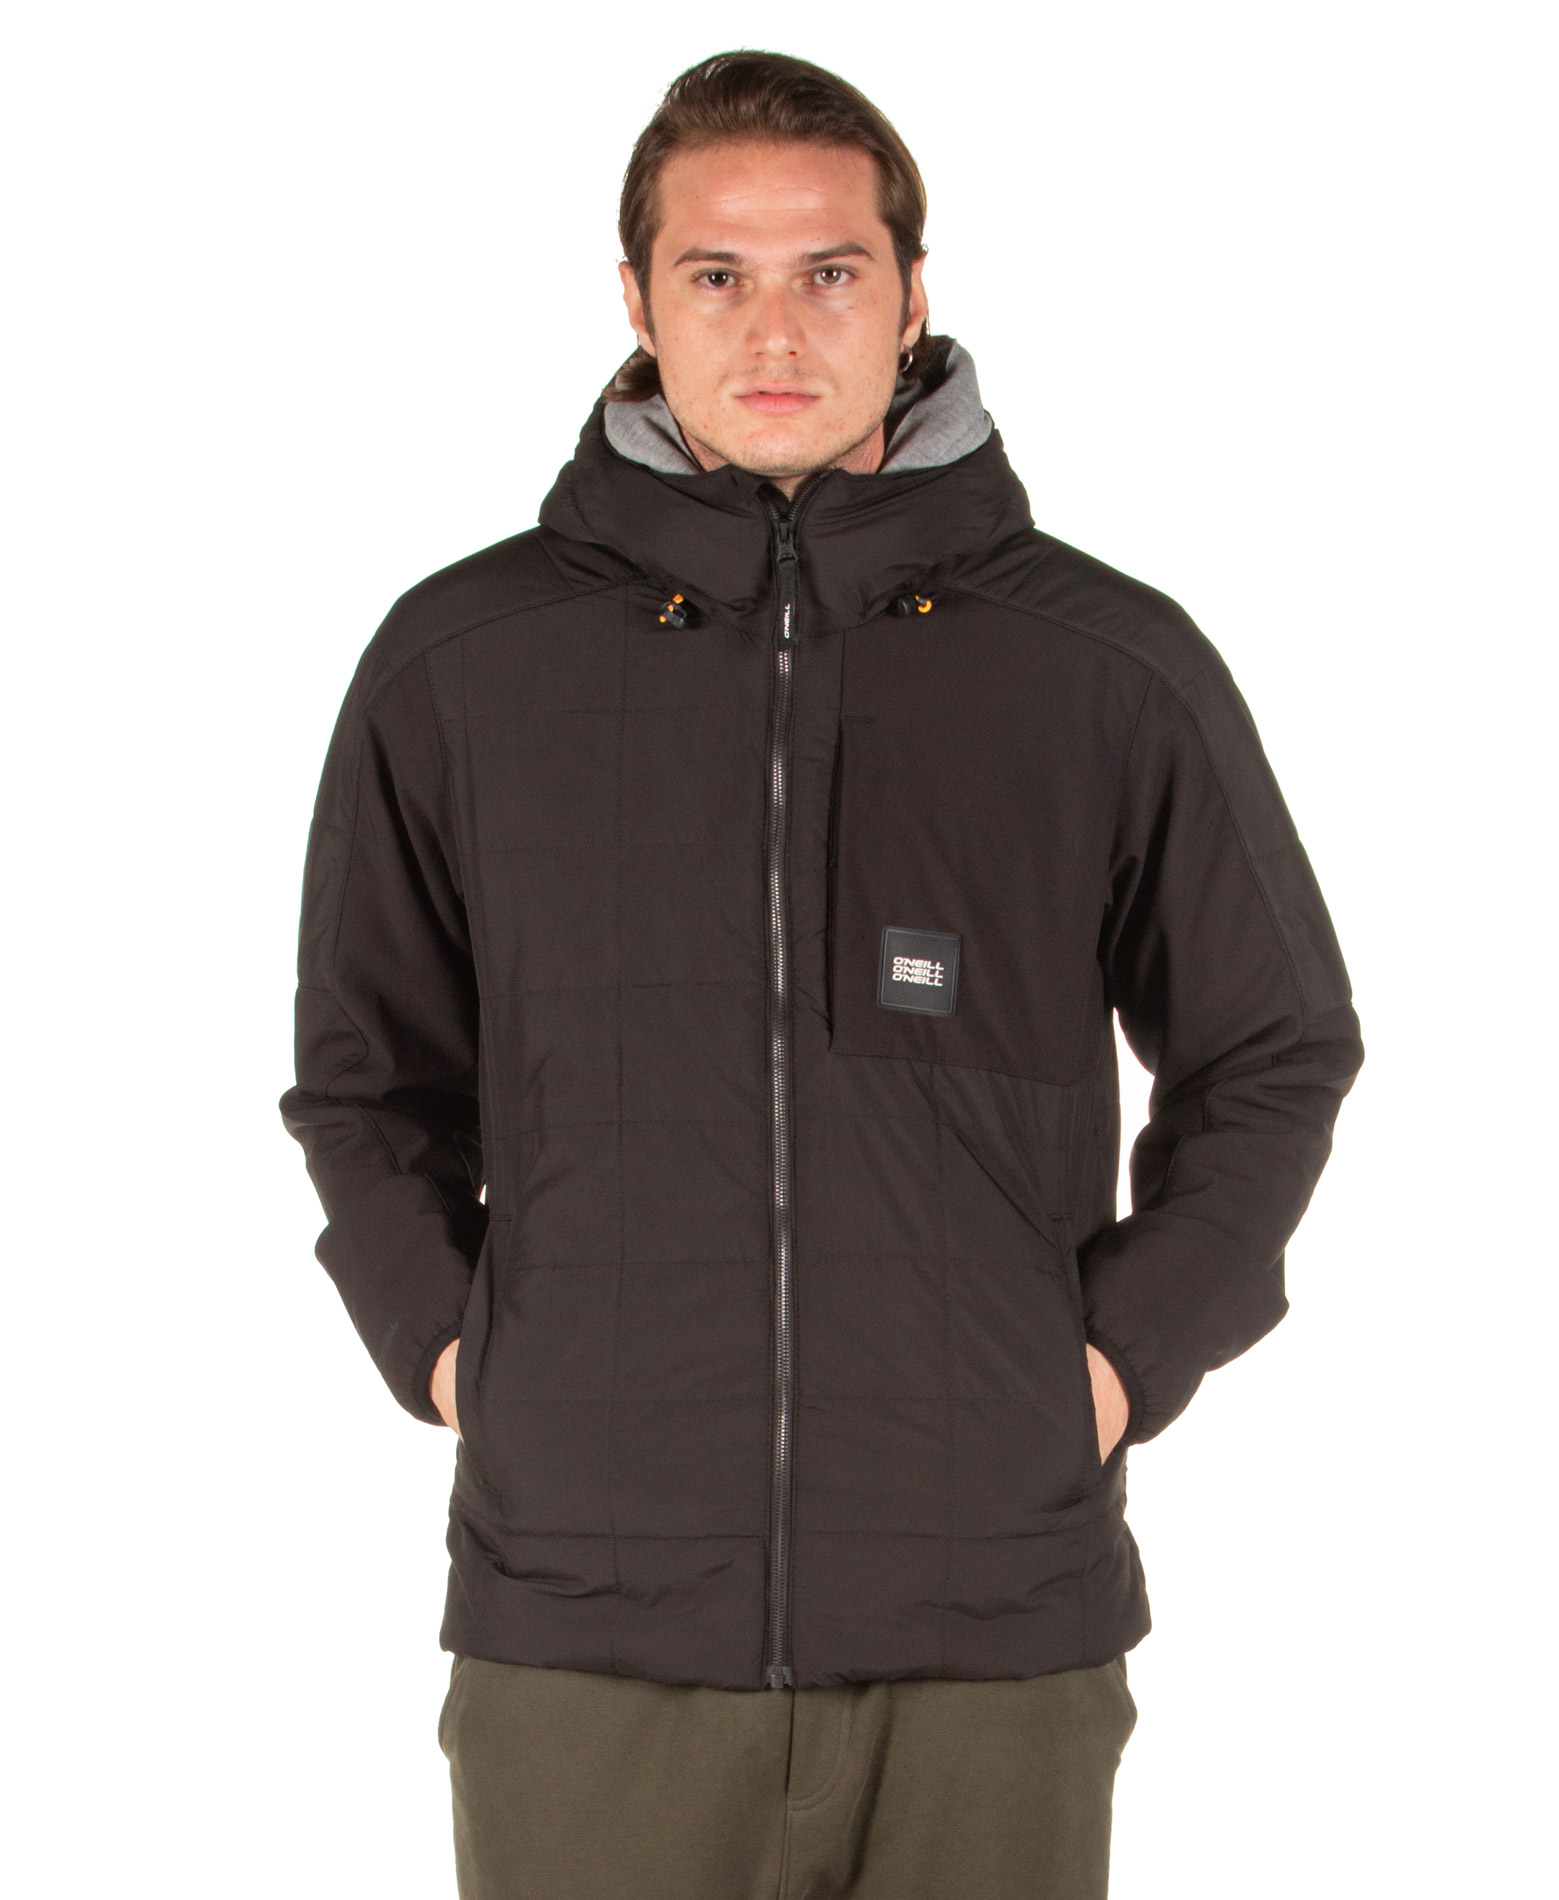 O'NEILL PM MANEUVER QUILT-MIX JACKET 9P0116-9010 Μαύρο